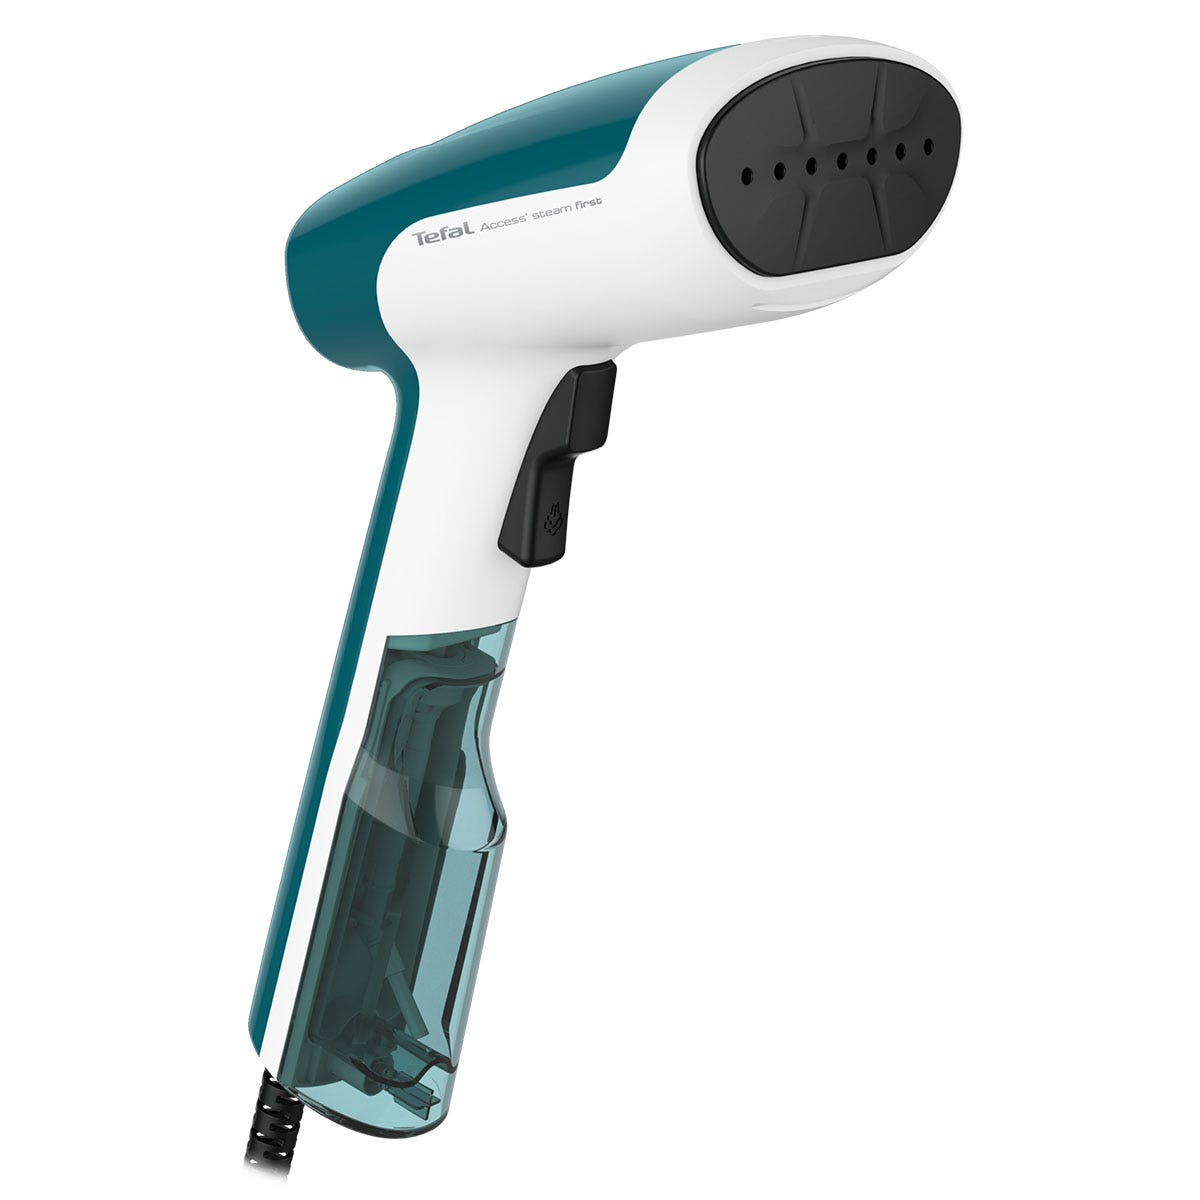 Tefal DT6131 Access Steam First DT6131 Handheld Garment Steamer - Blue and White